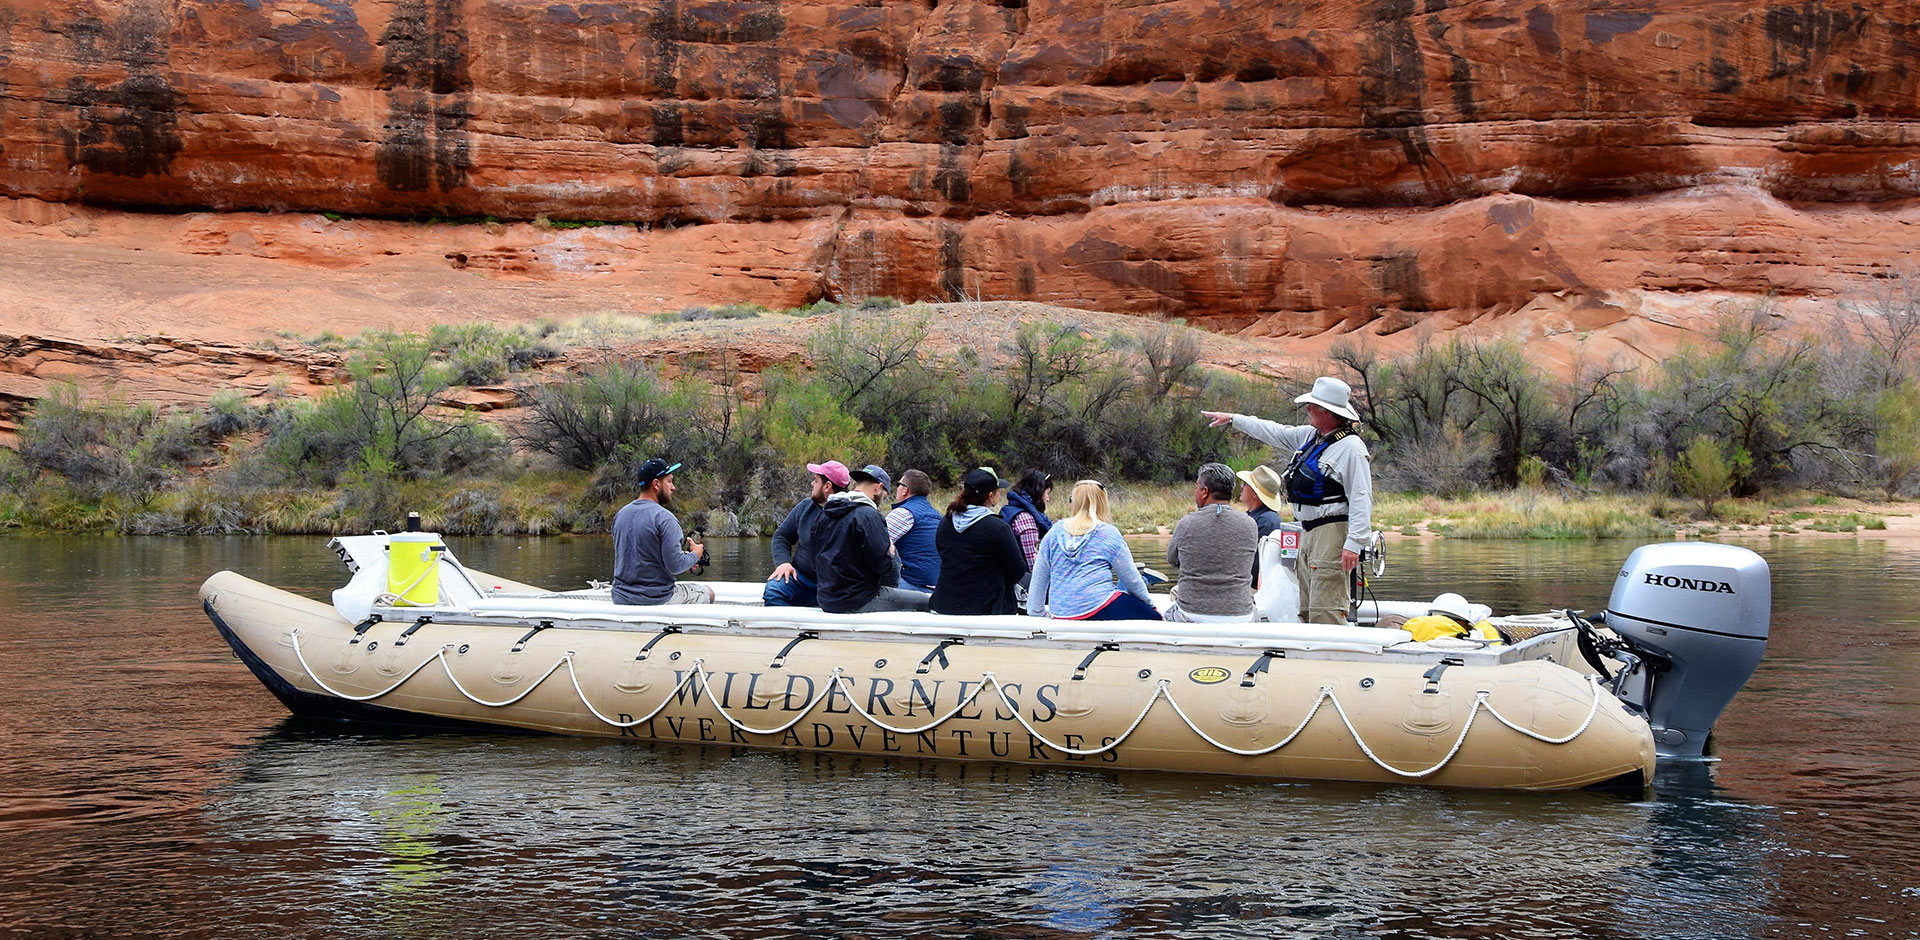 Passengers float down the Colorado River aboard an inflatable raft.